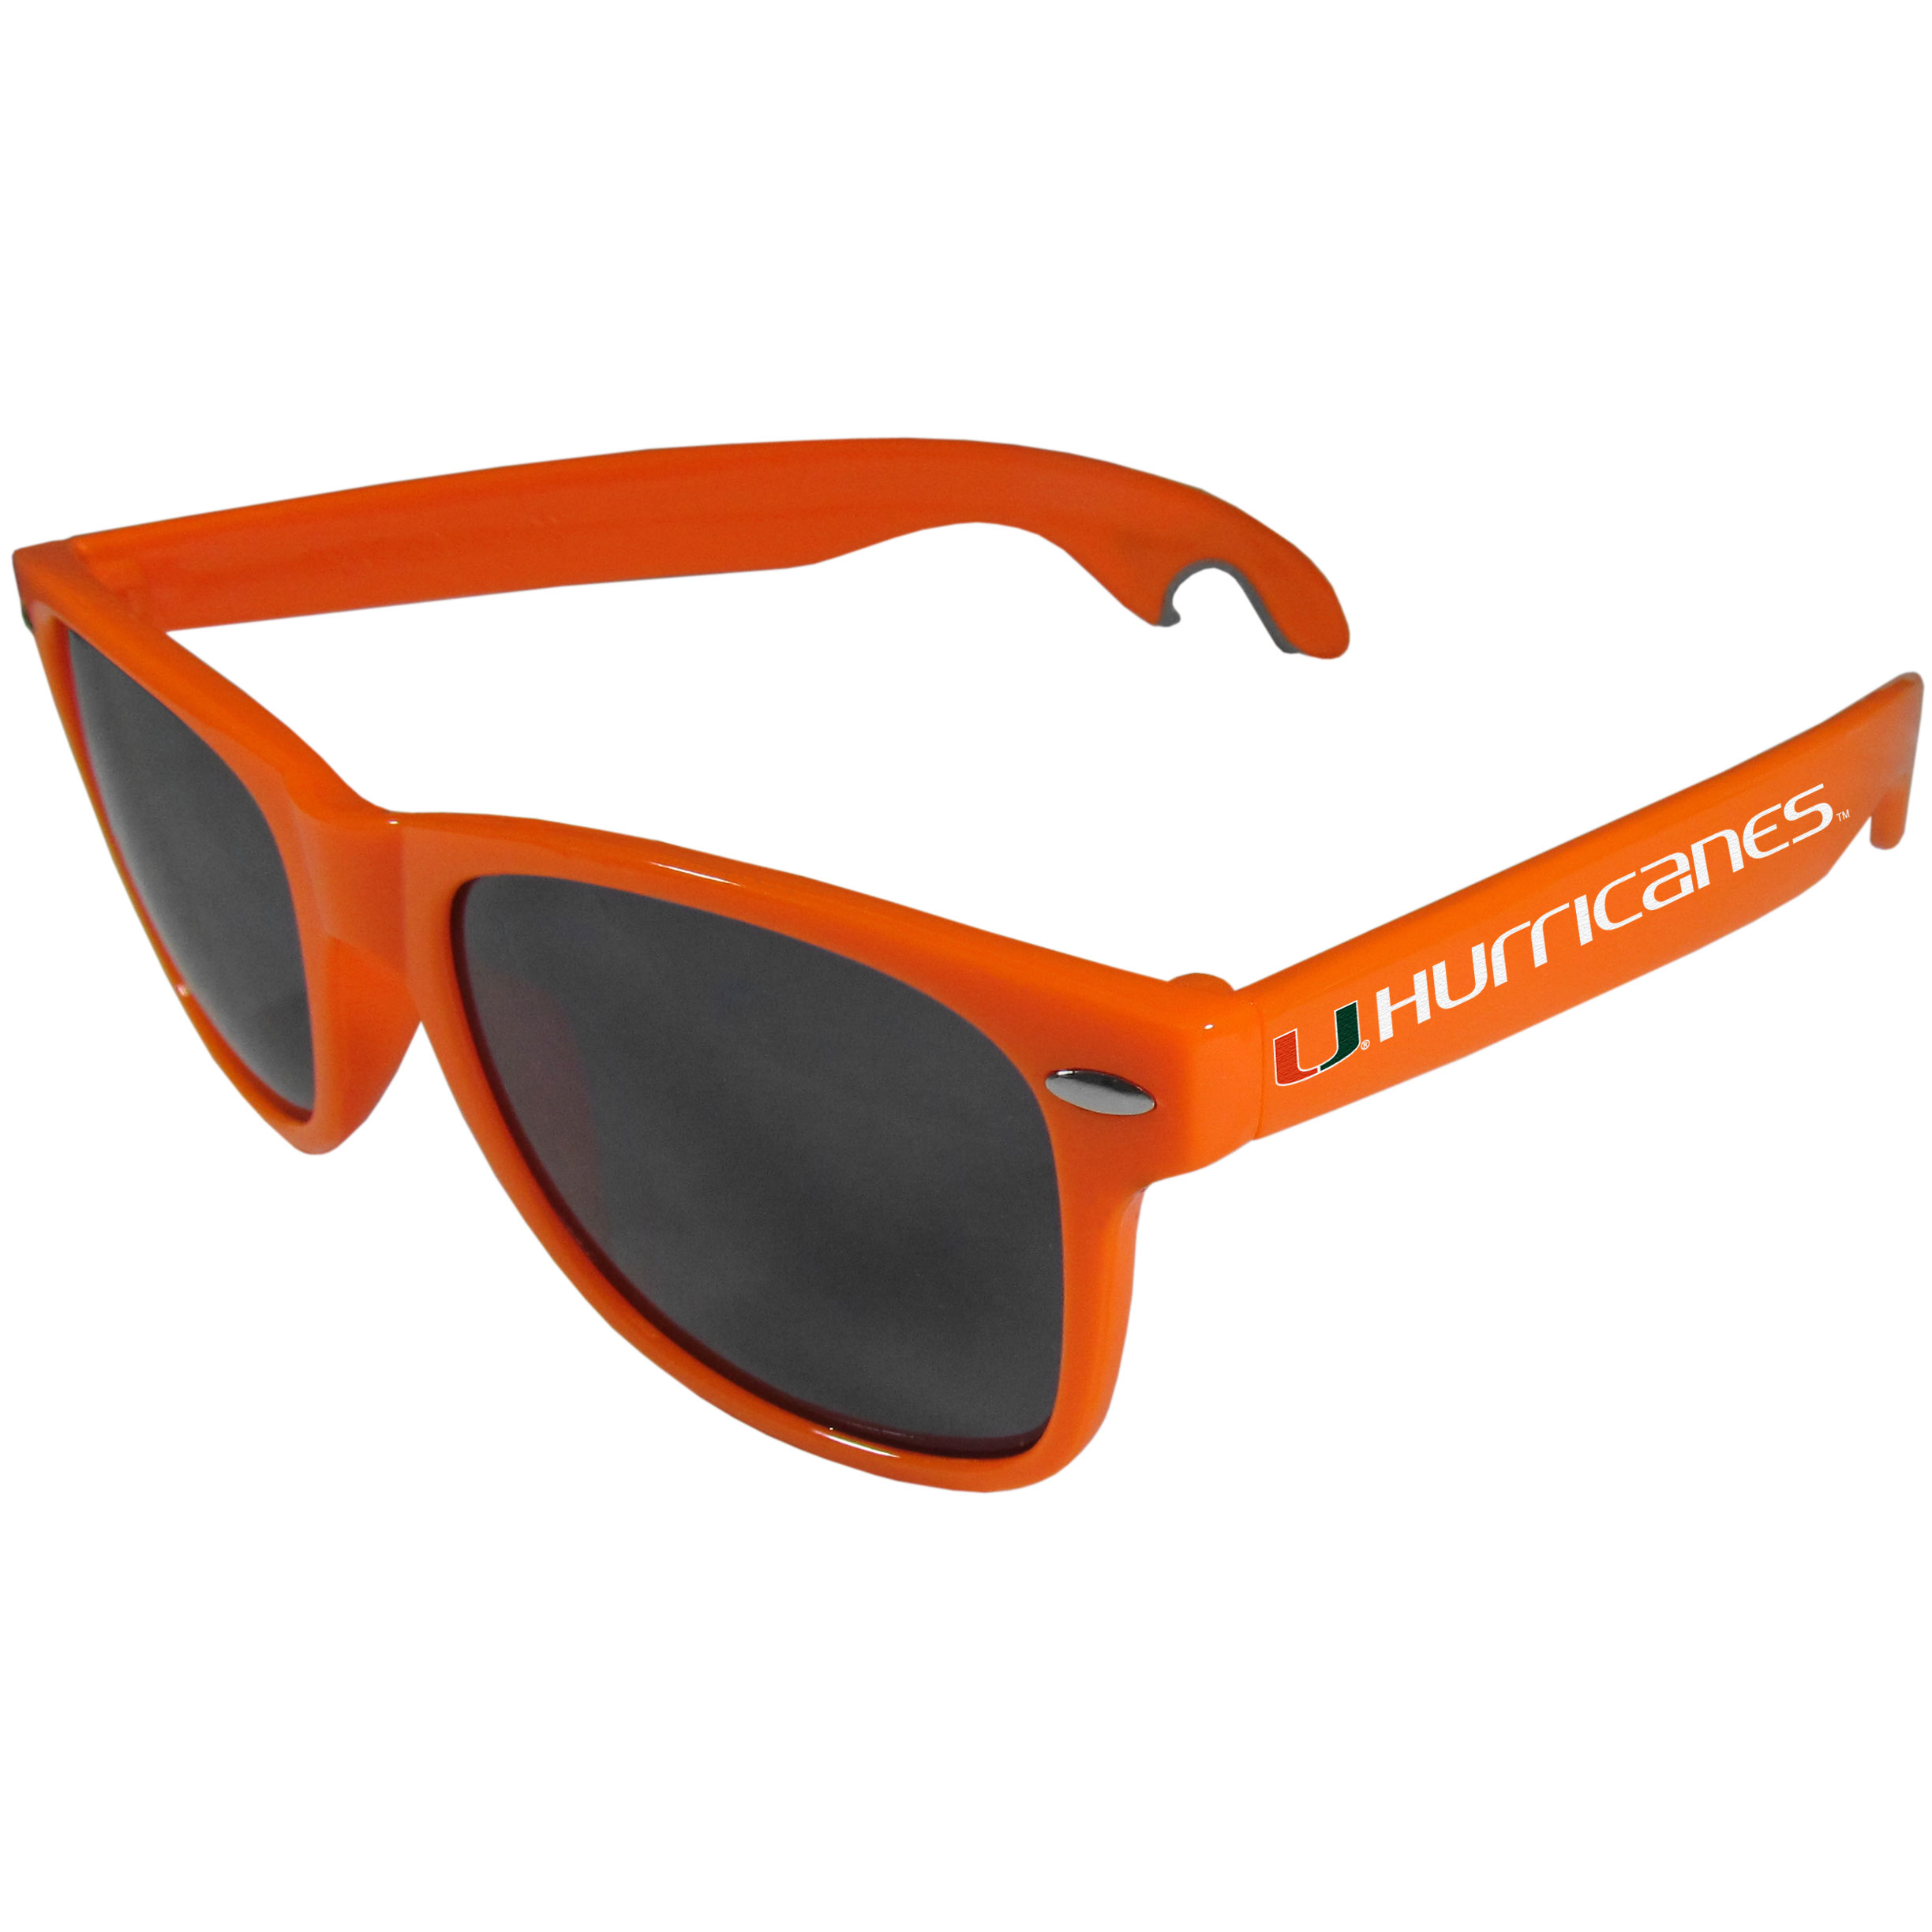 Miami Hurricanes Beachfarer Bottle Opener Sunglasses, Orange - Seriously, these sunglasses open bottles! Keep the party going with these amazing Miami Hurricanes bottle opener sunglasses. The stylish retro frames feature team designs on the arms and functional bottle openers on the end of the arms. Whether you are at the beach or having a backyard BBQ on game day, these shades will keep your eyes protected with 100% UVA/UVB protection and keep you hydrated with the handy bottle opener arms.